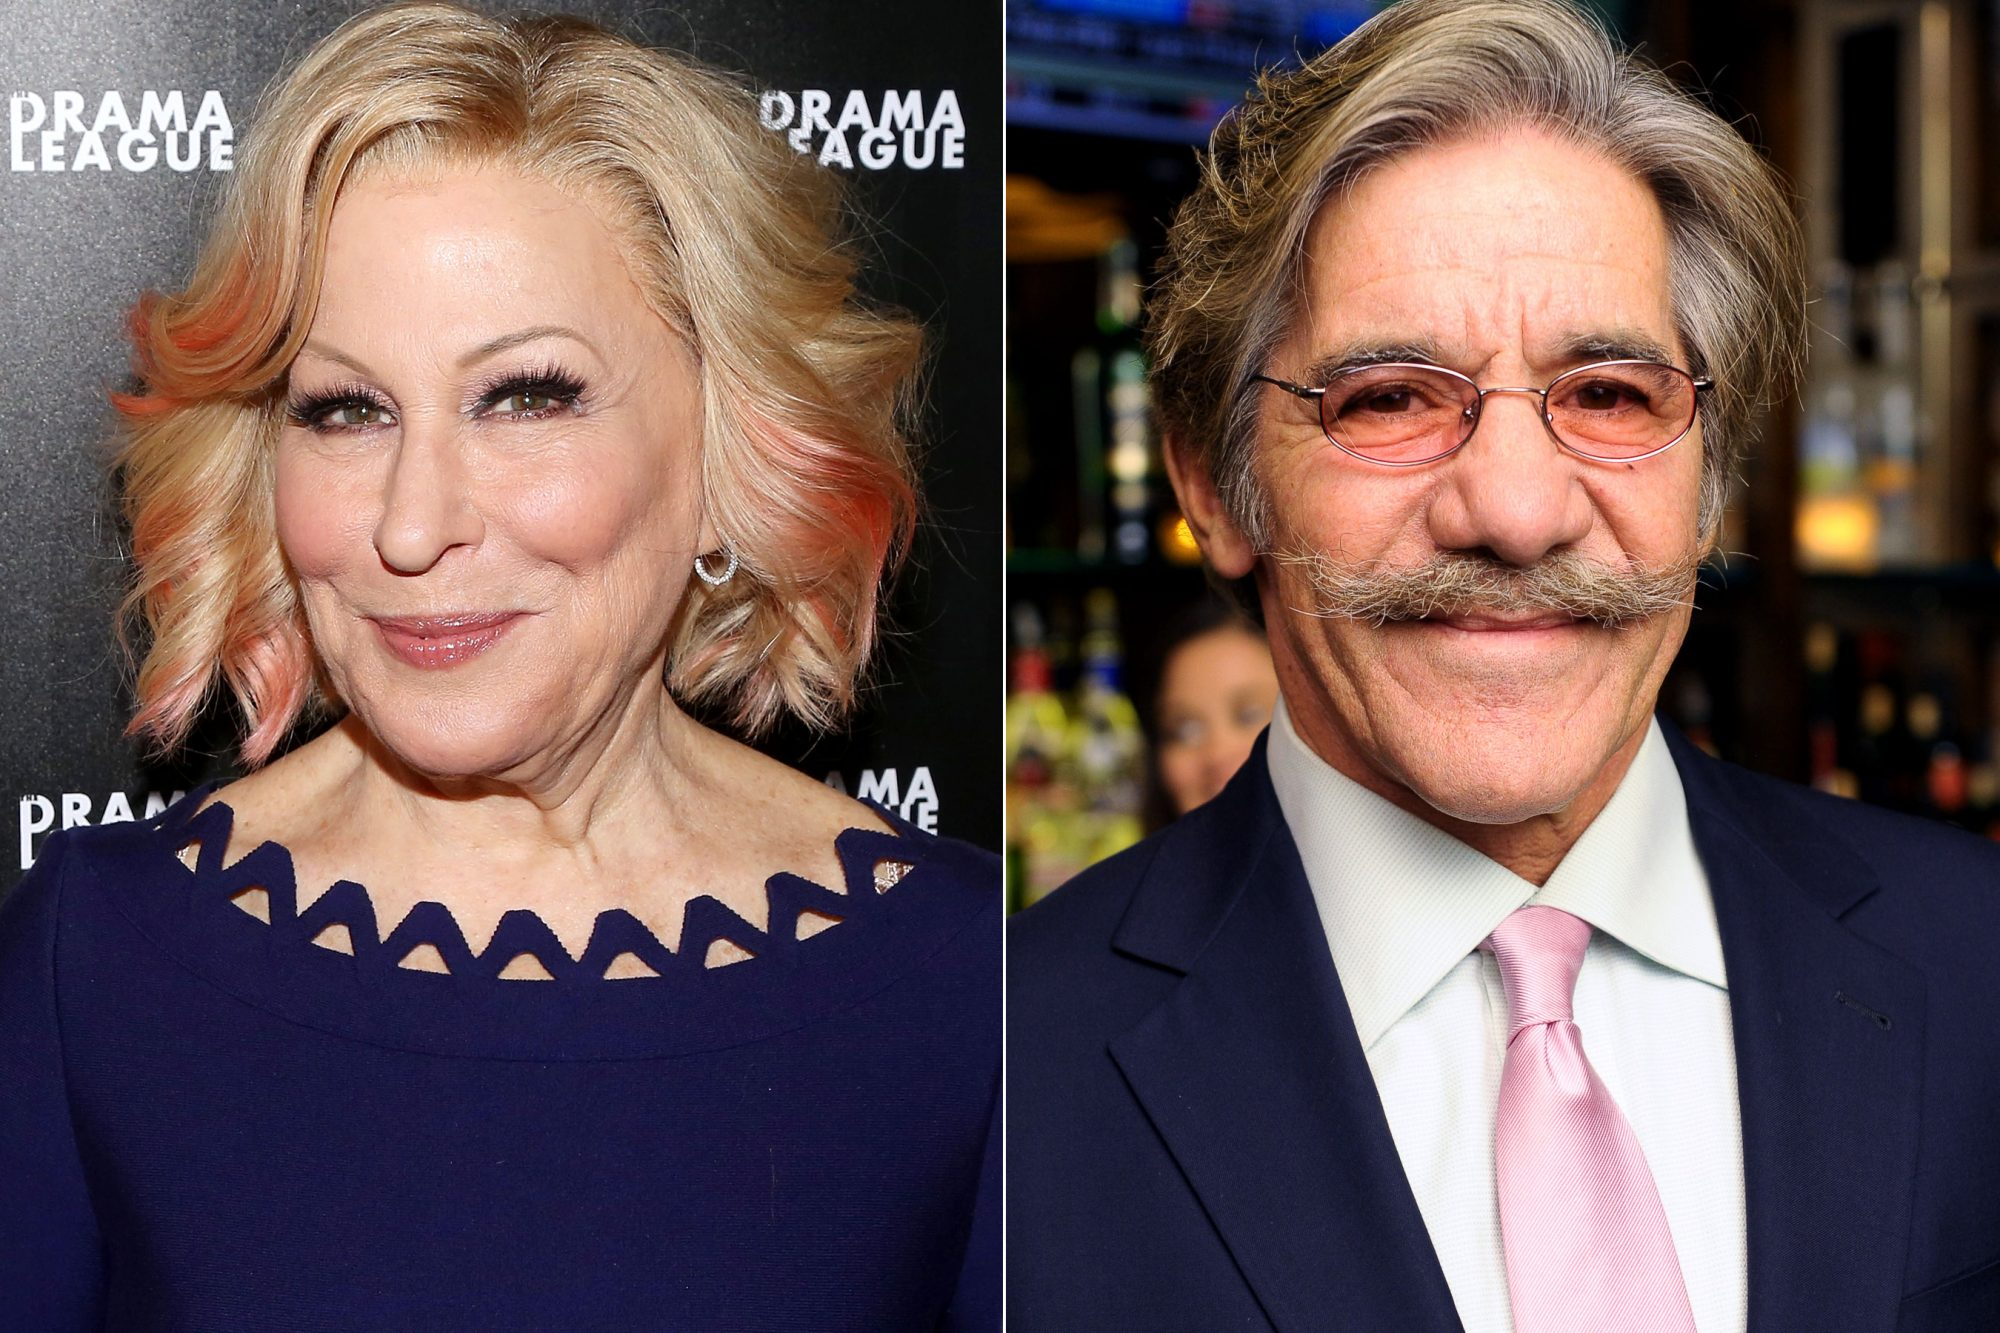 Bette Midler / Geraldo Rivera